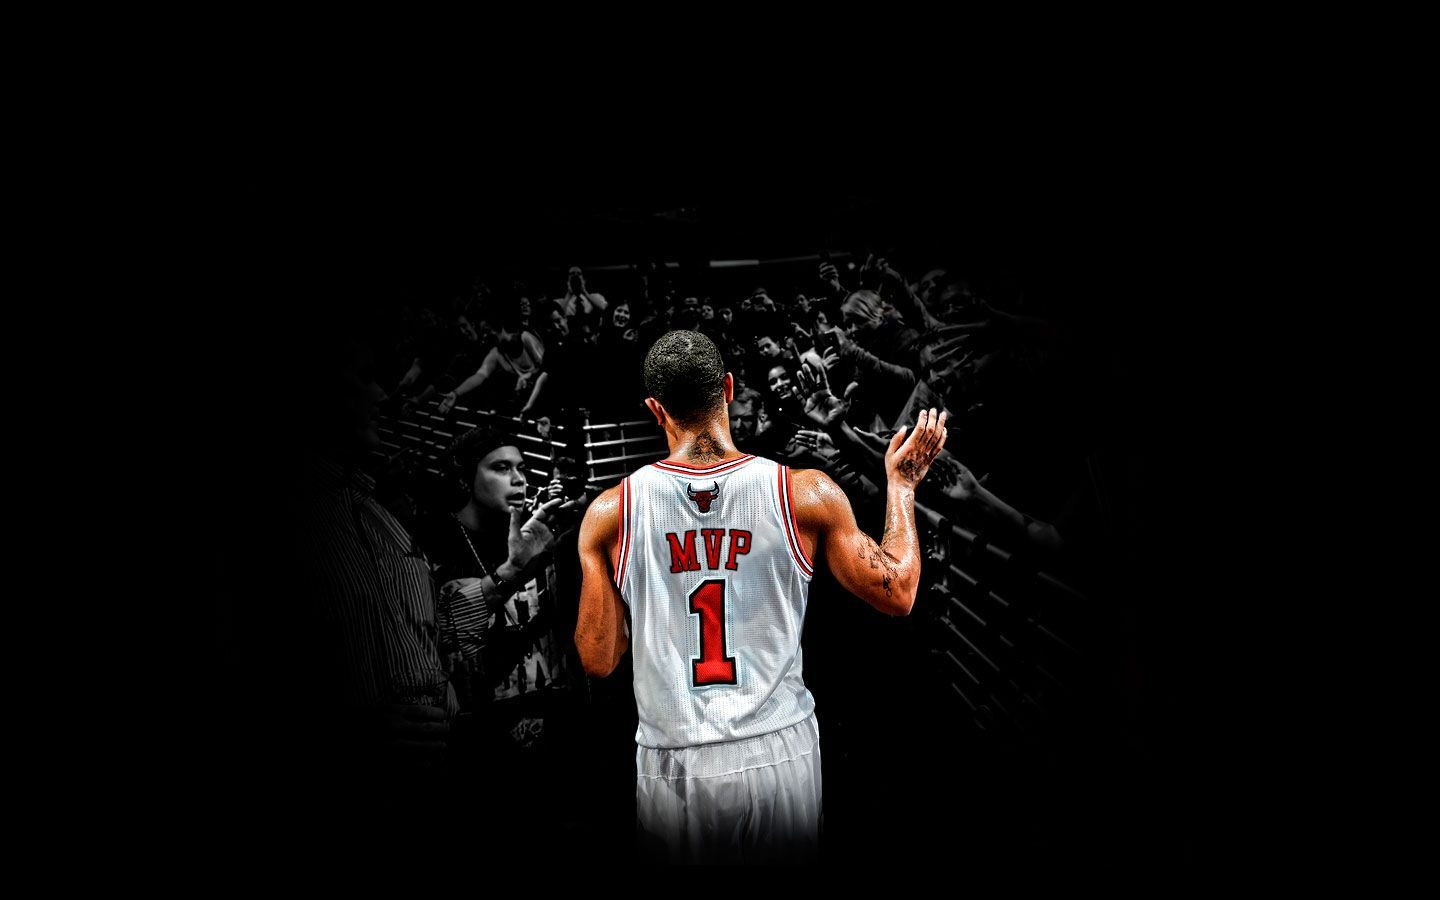 Download-Derrick-Rose-Live-HD-for-android-Derrick-Rose-wallpaper-wpc5804278